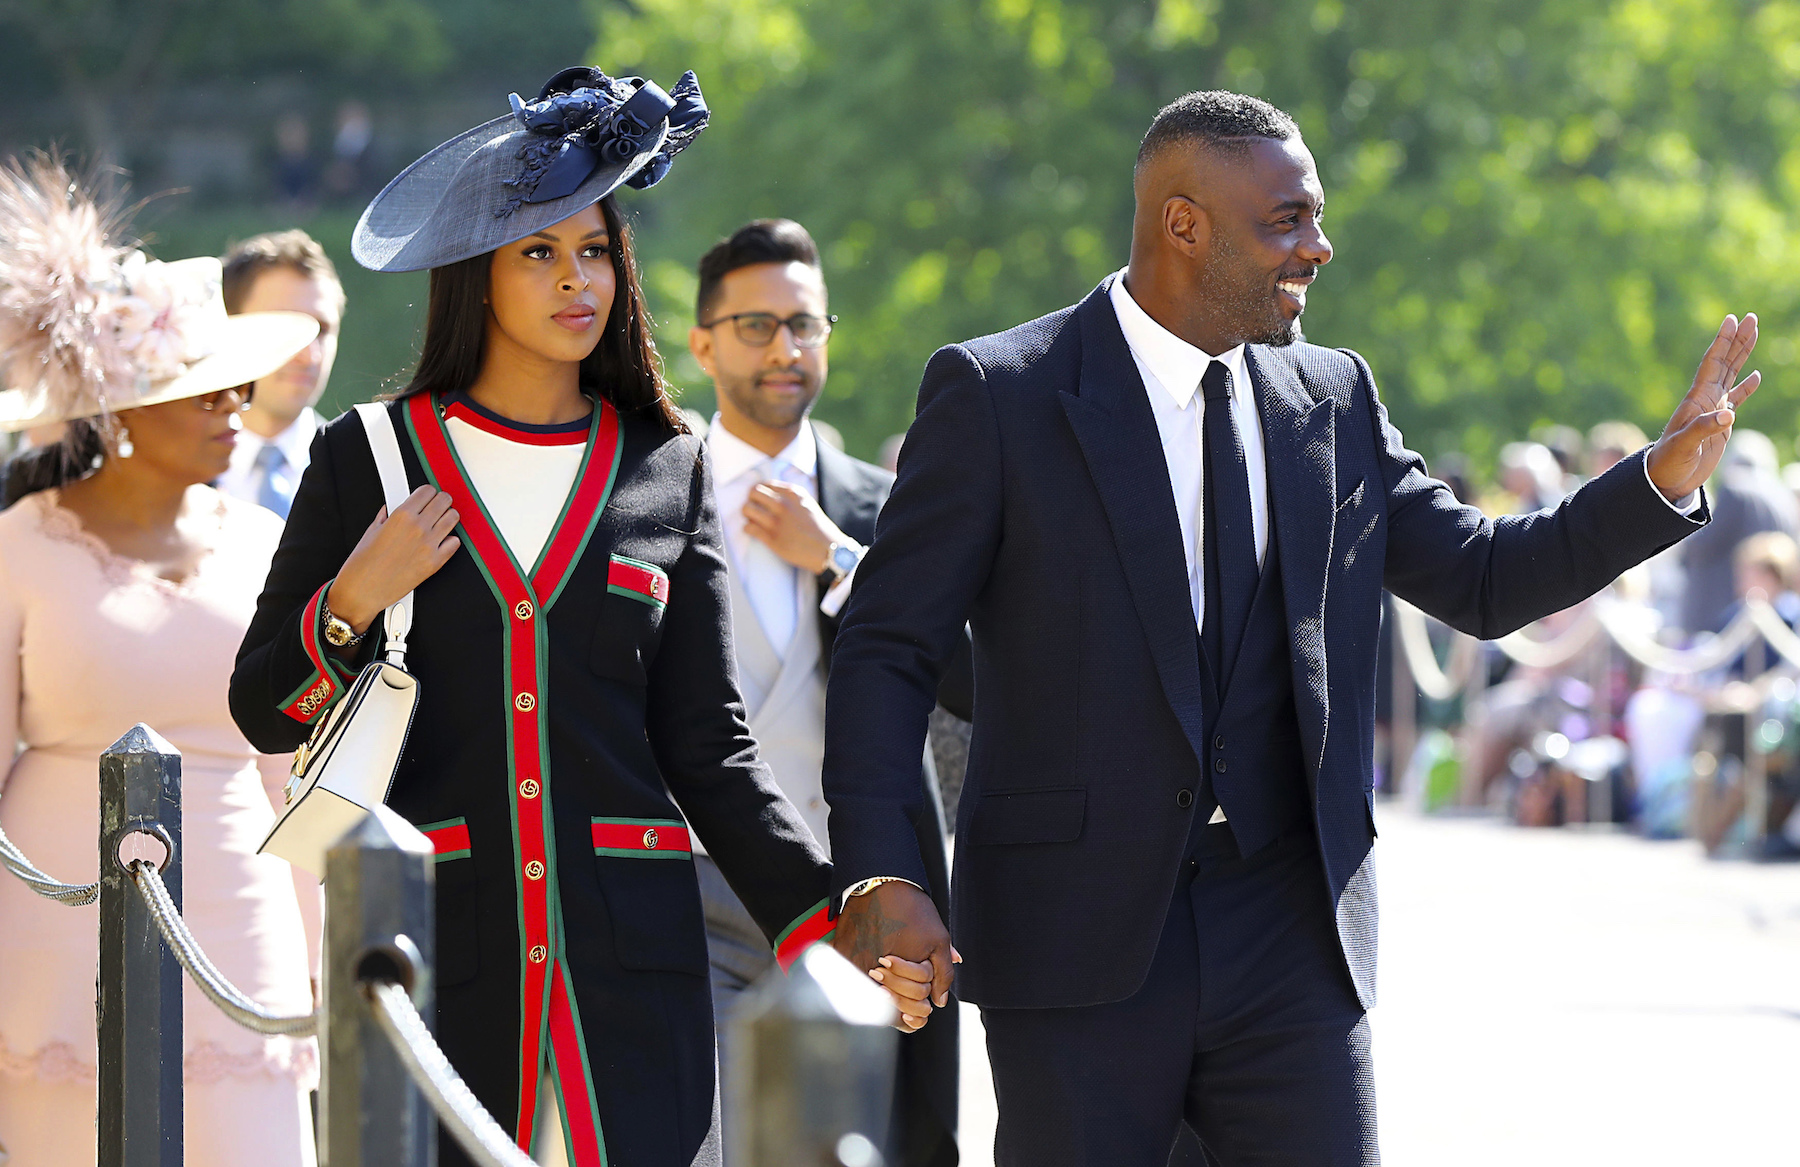 "<div class=""meta image-caption""><div class=""origin-logo origin-image ap""><span>AP</span></div><span class=""caption-text"">Idris Elba (right) and Sabrina Dhowre arrive at St George's Chapel at Windsor Castle for the wedding of Meghan Markle and Prince Harry. (Gareth Fuller/PA Wire)</span></div>"